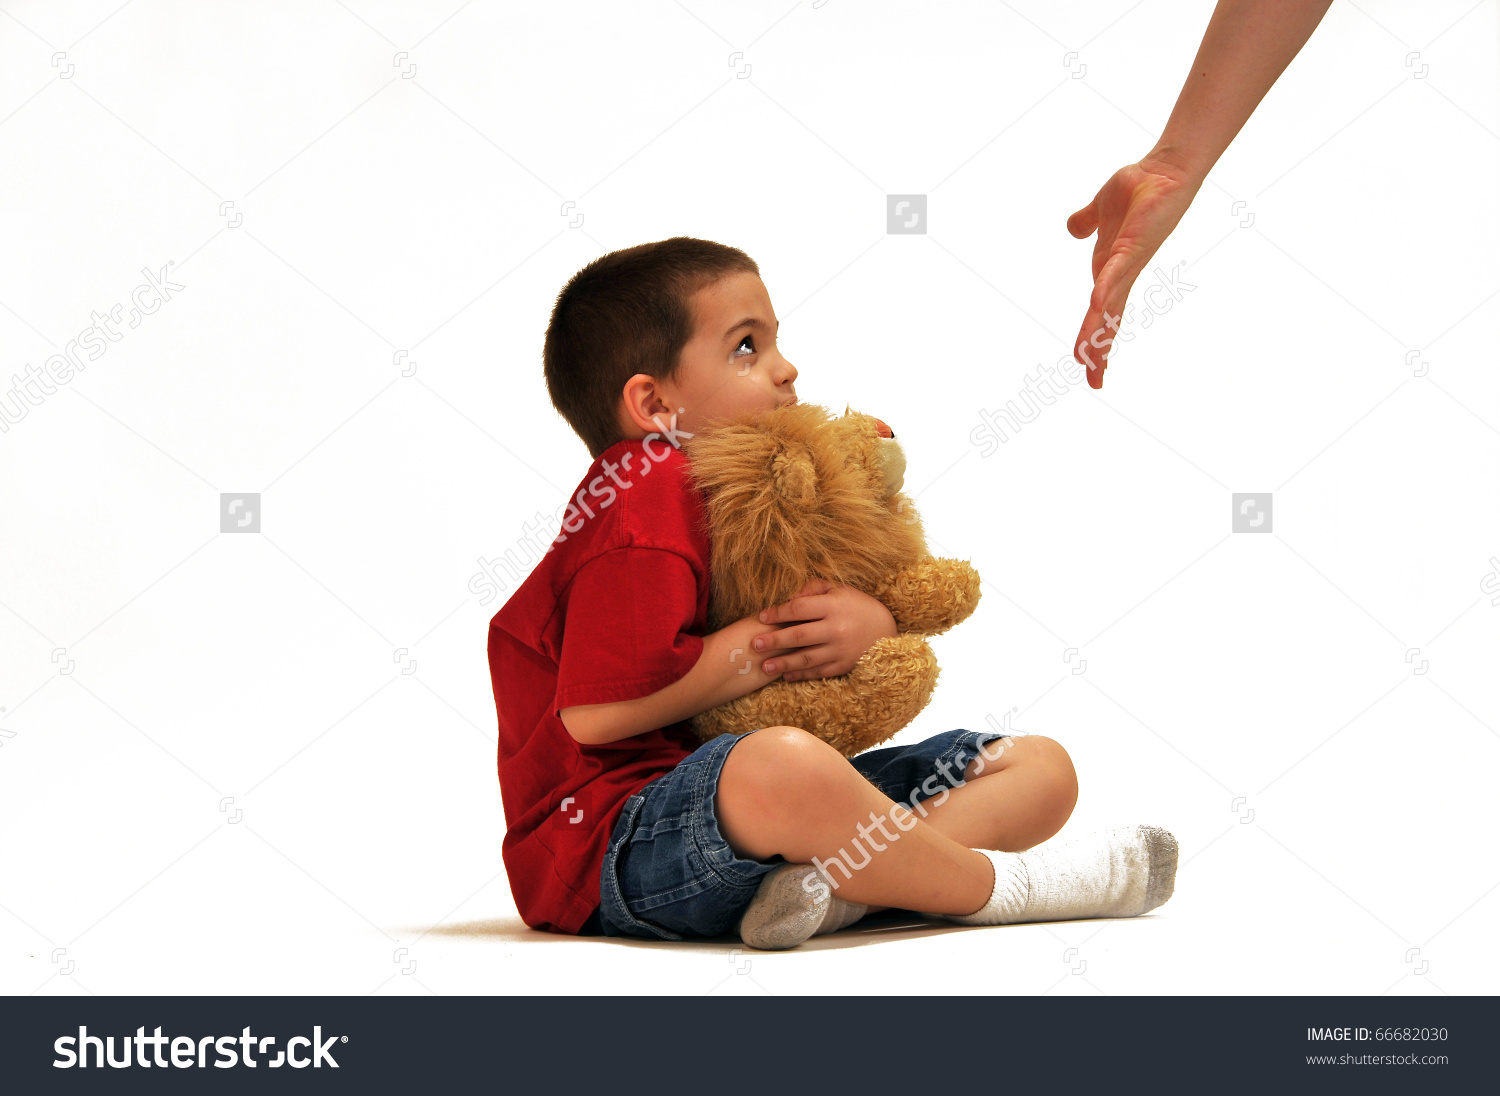 Young Boy Clutching His Stuffed Lion Stock Photo 66682030.